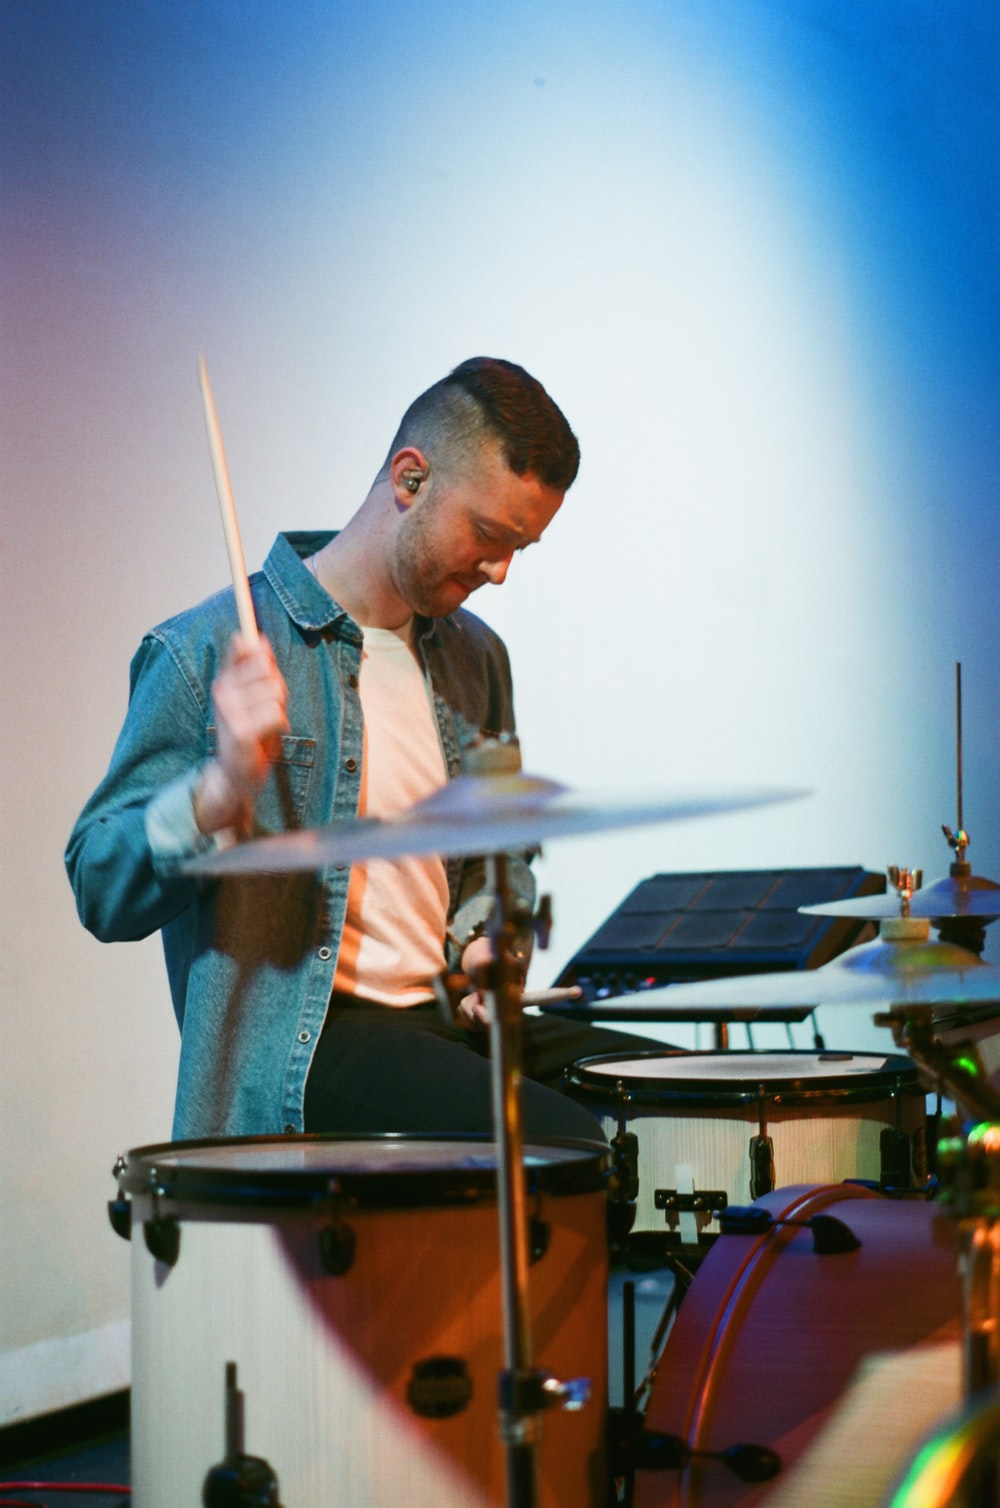 man about to strike drumstick on the drums